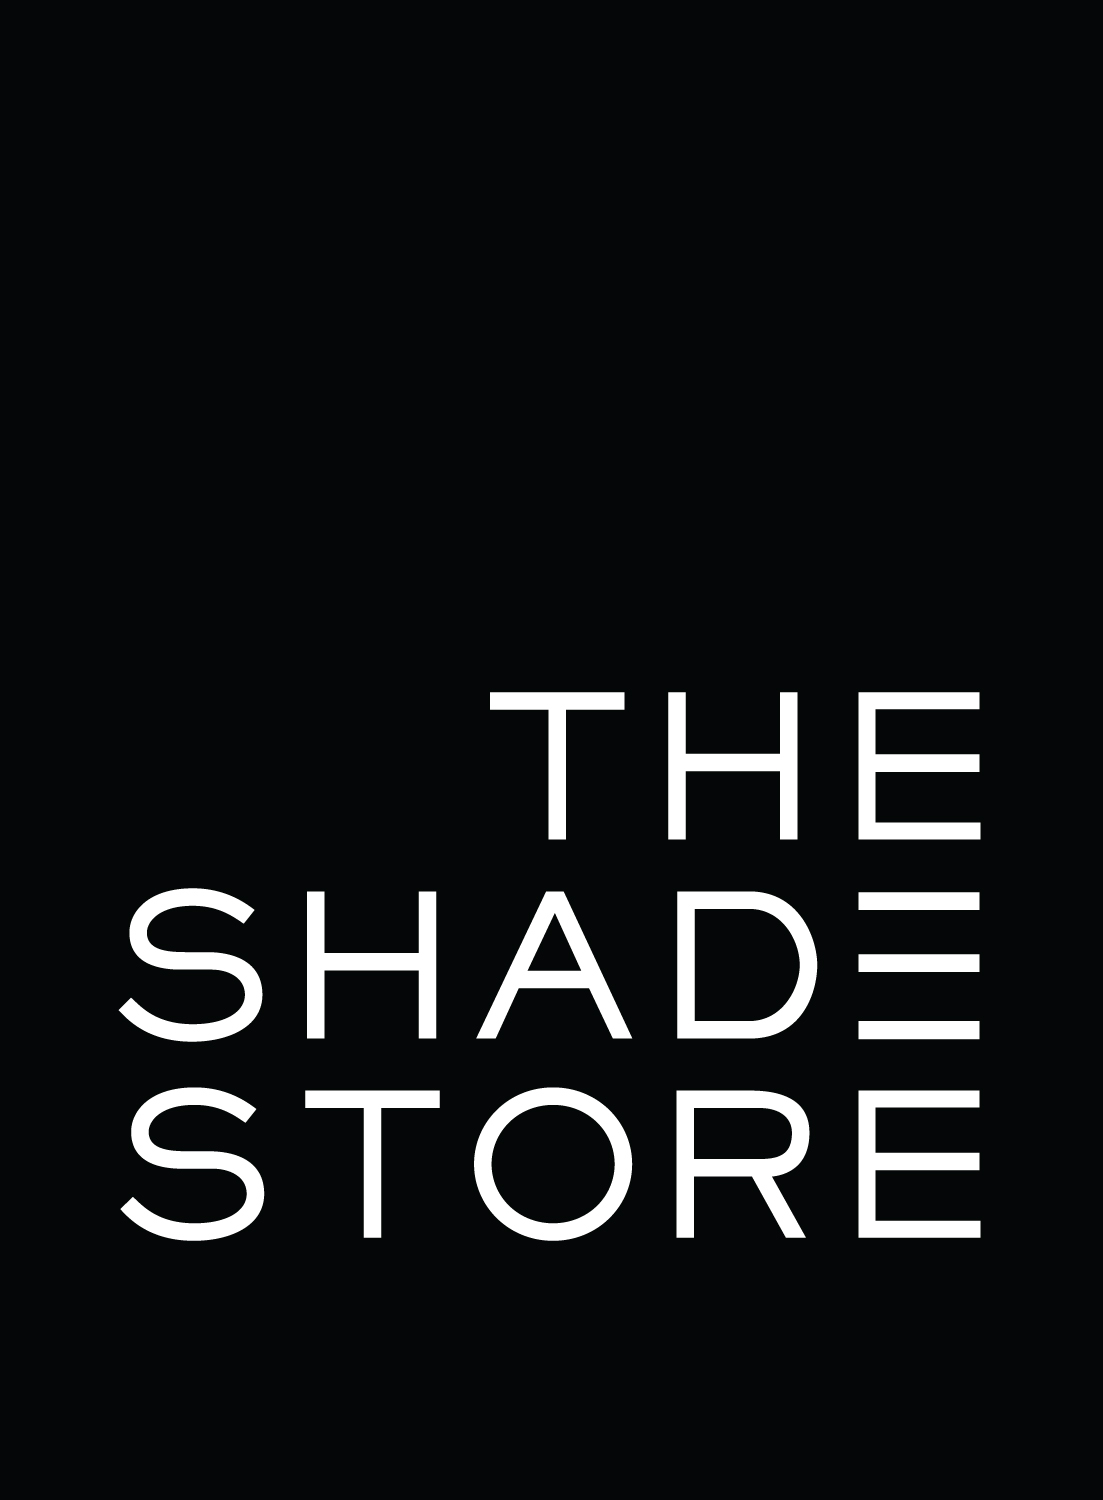 Limited Time Sale from The Shade Store